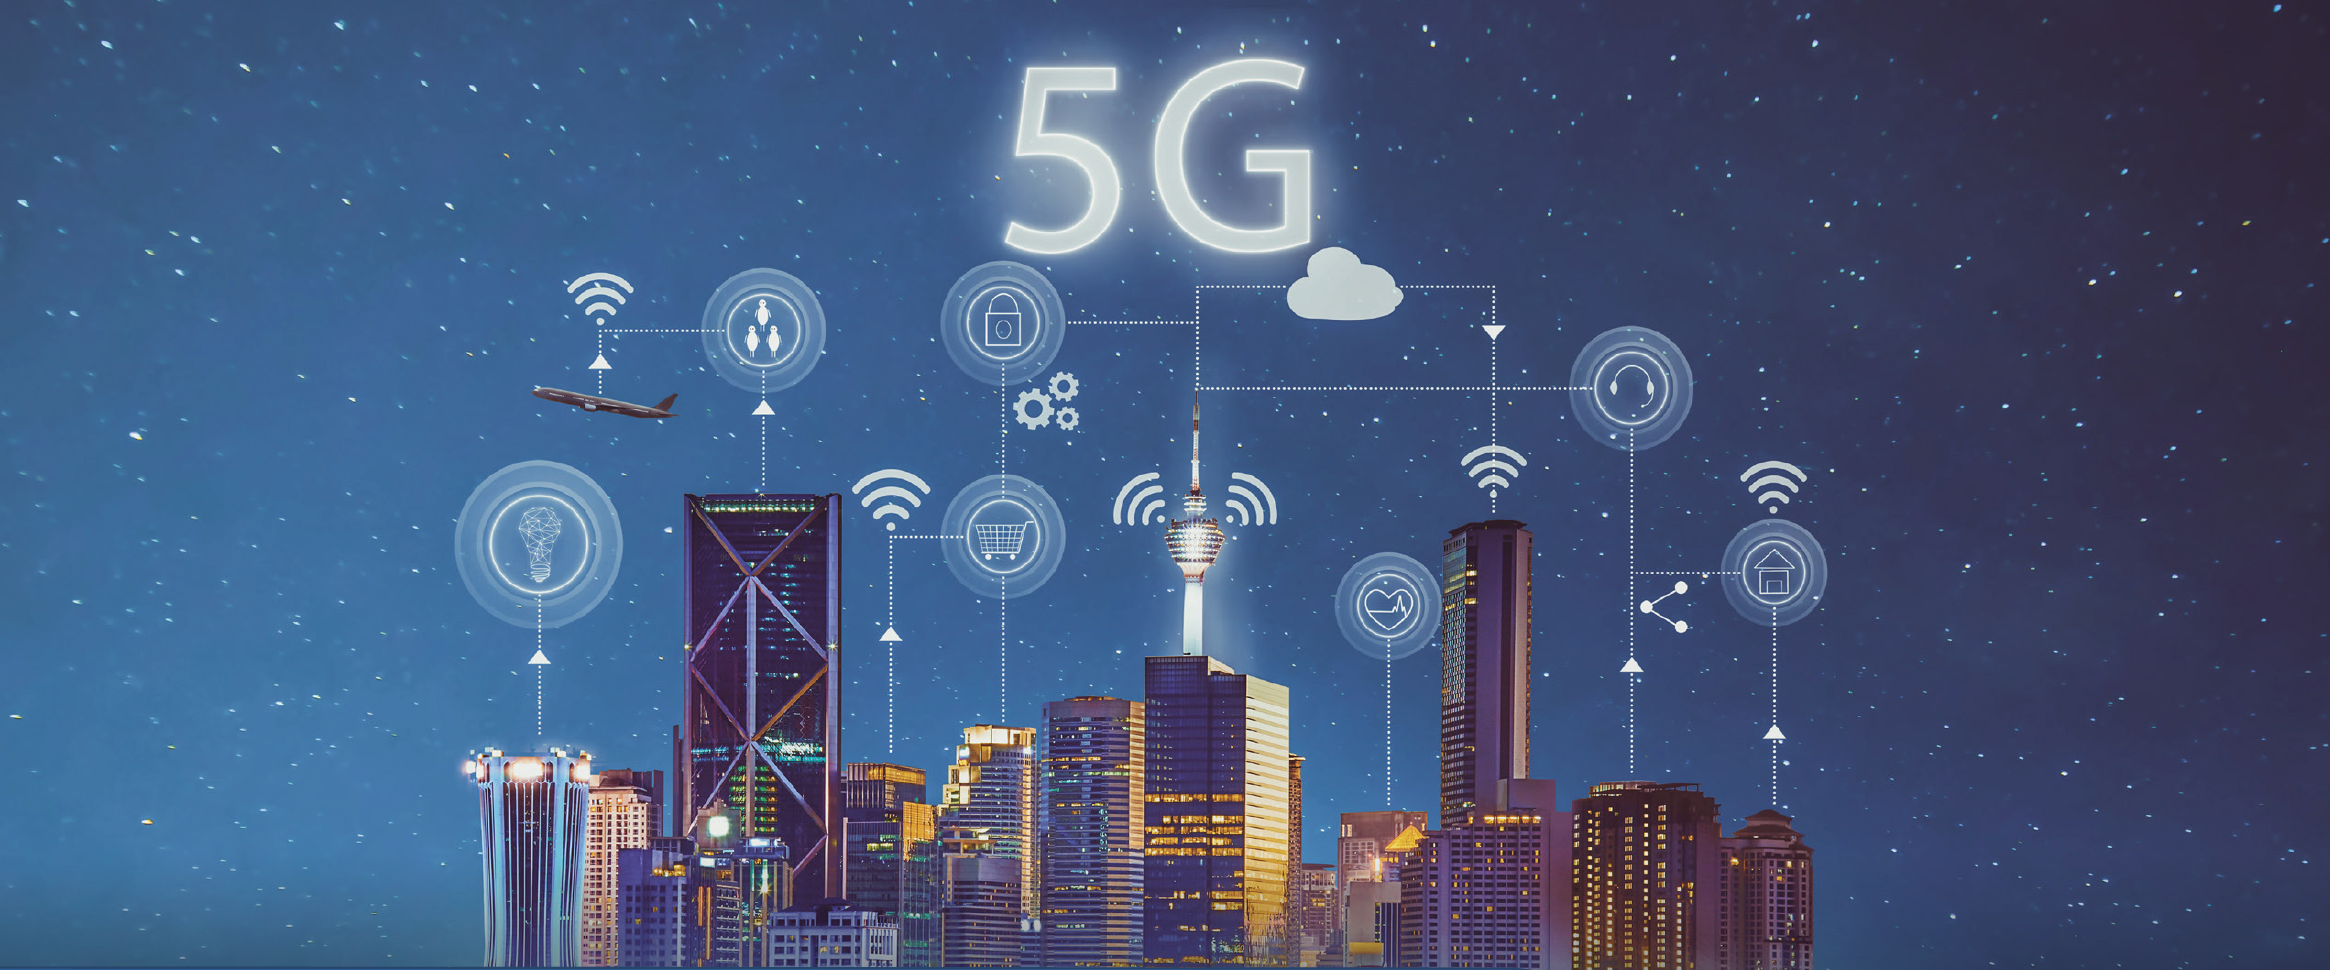 Getting Started in 5G - Overcome New Radio Device Design Challenges